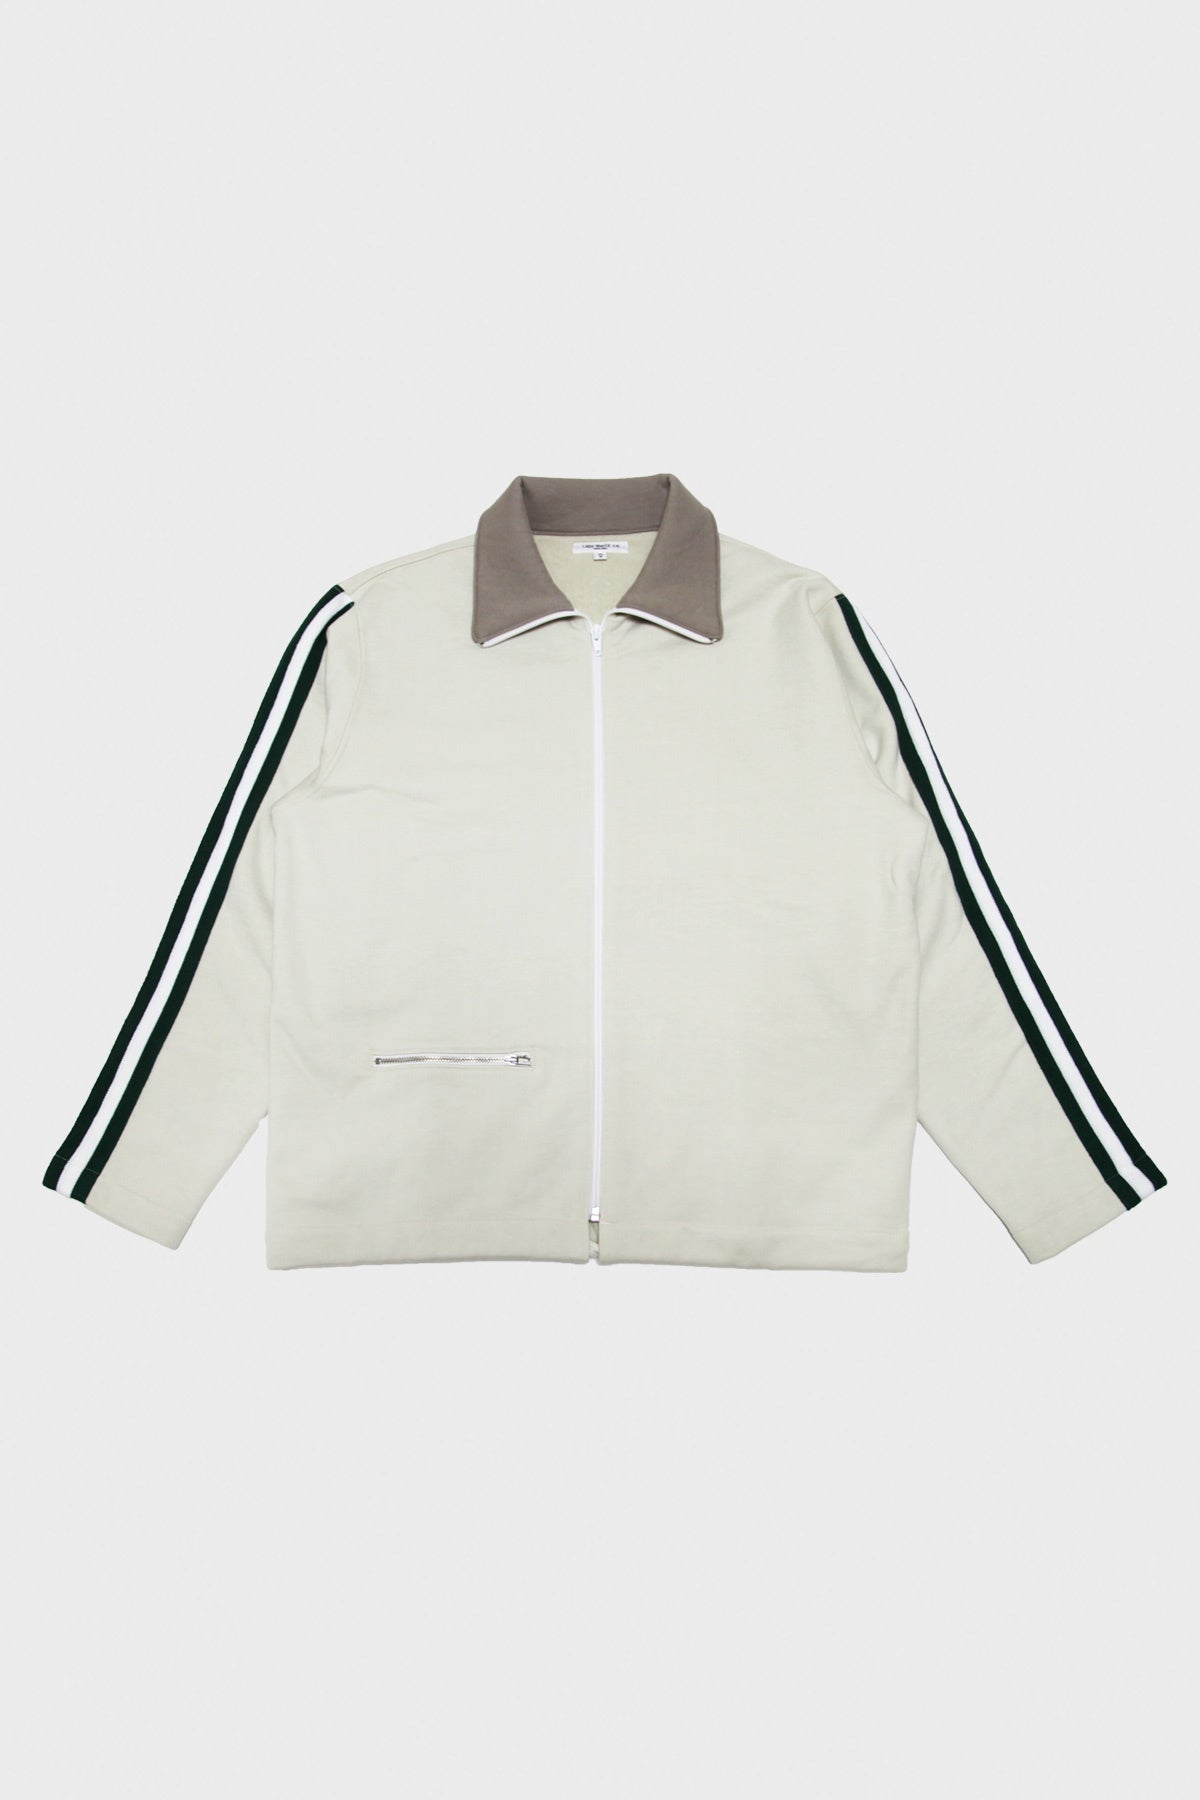 Lady White Co. - Webbing Track Jacket - Bone - Canoe Club